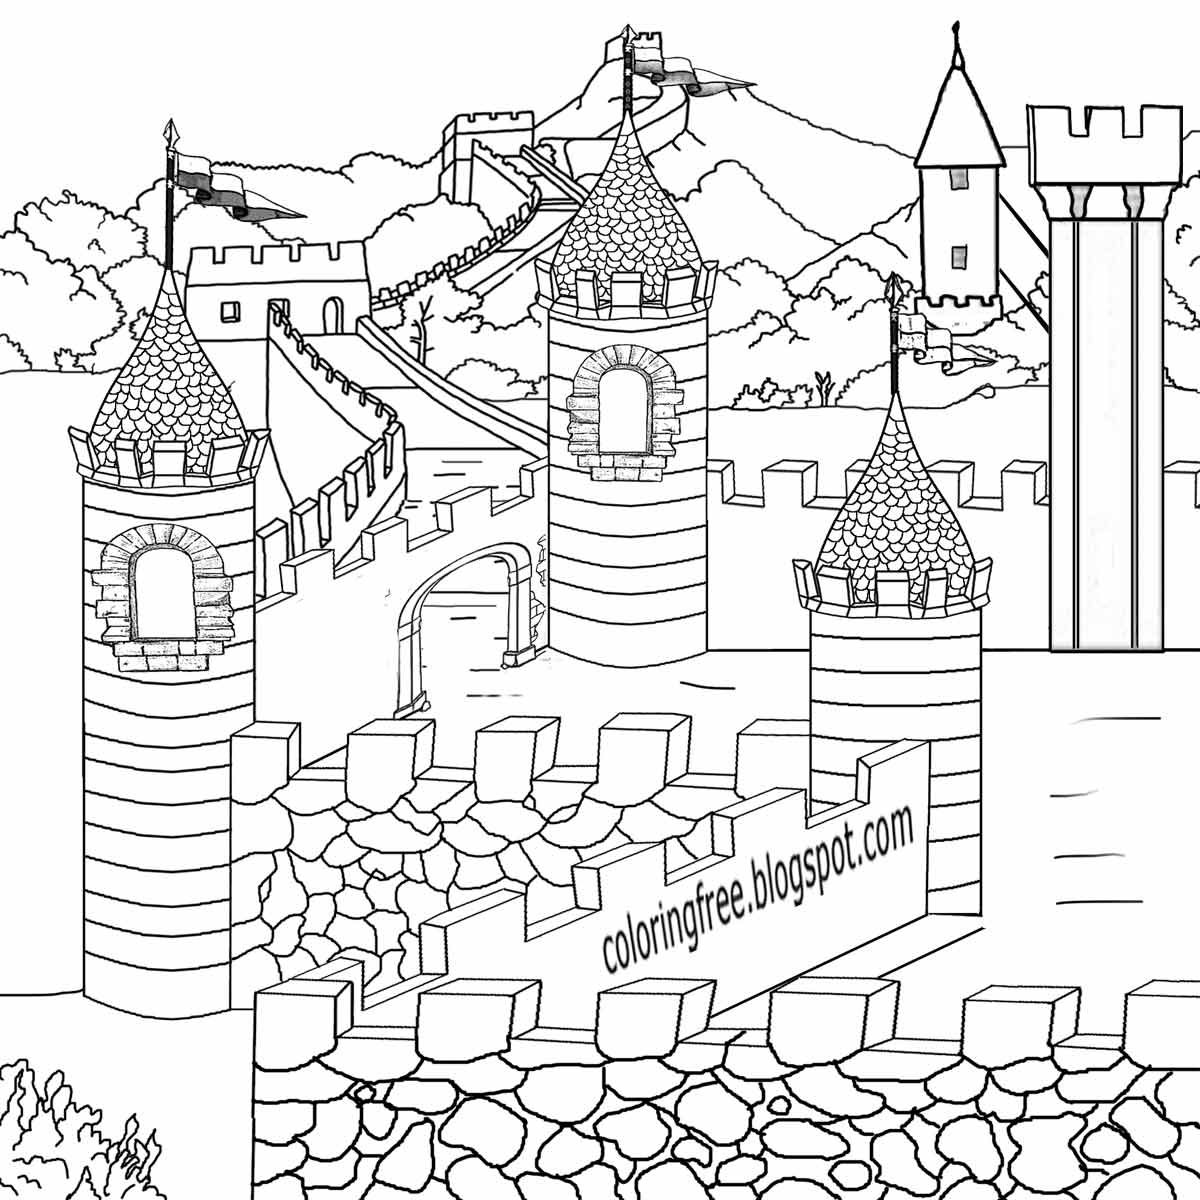 Printable coloring pages for teenagers - Legendary British Leader King Arthur Camelot Magical Castle Medieval Coloring Pages For Teenagers